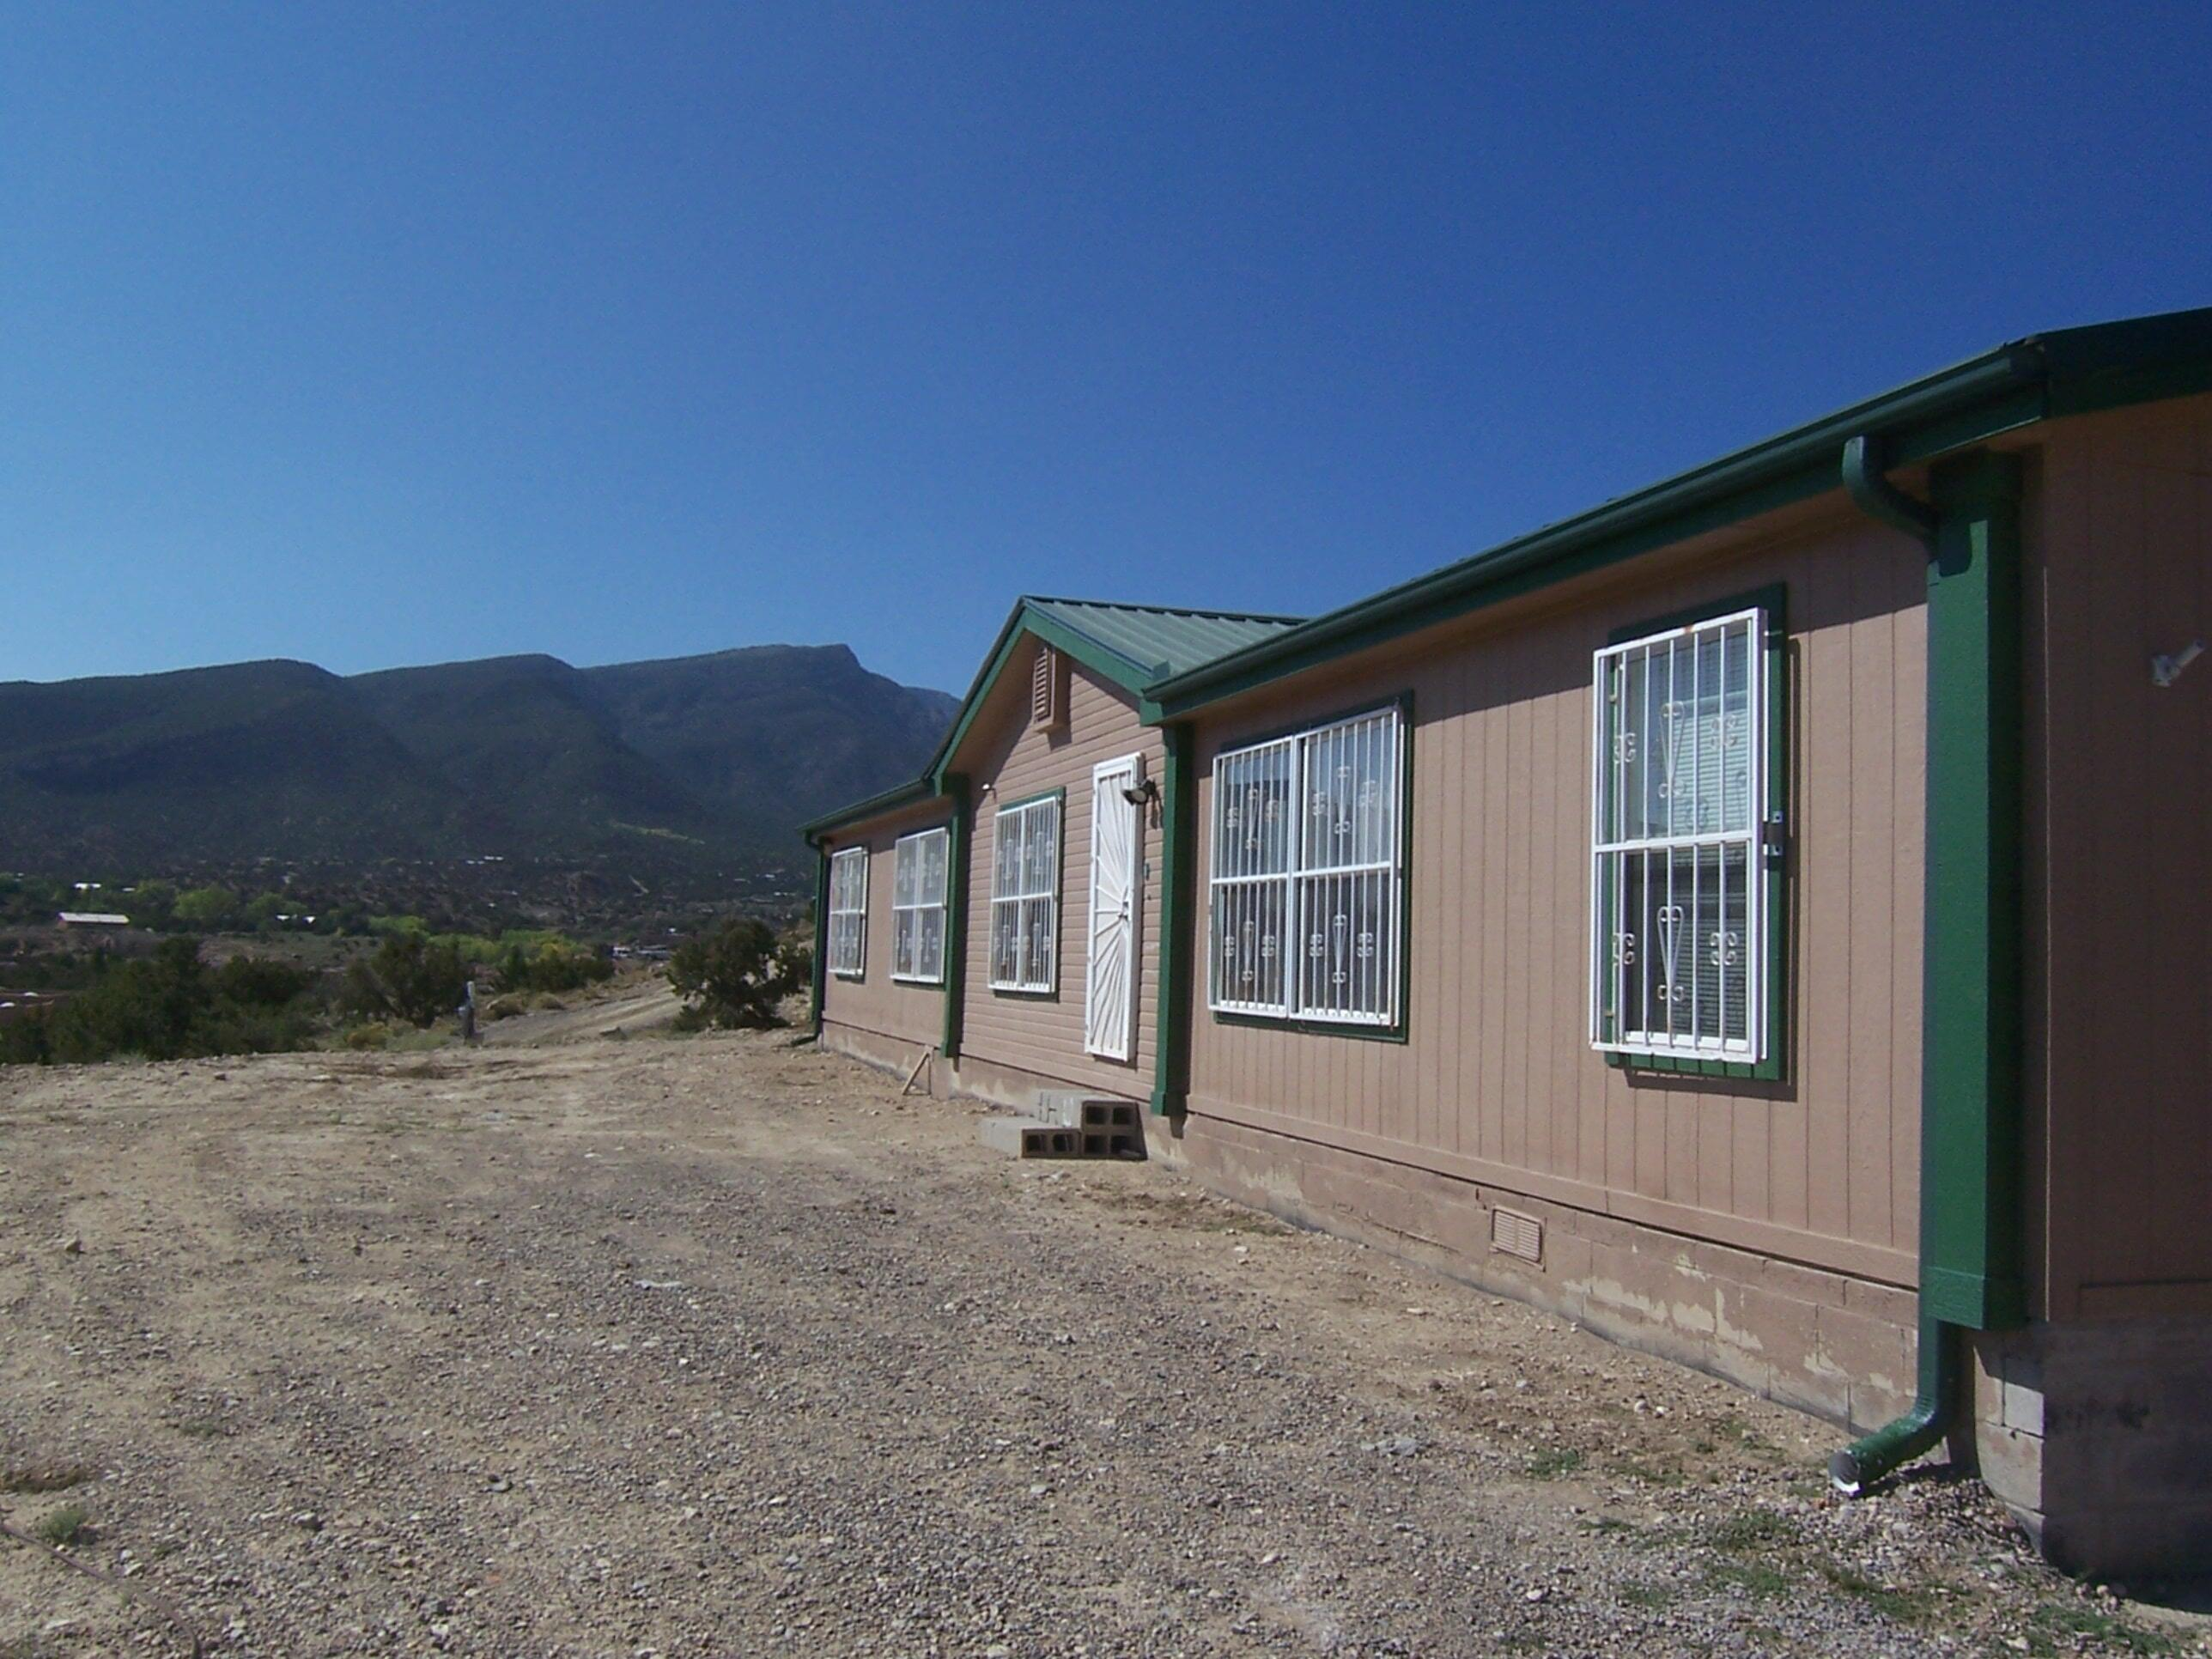 3 BEDROOM + OFFICE ON 1.6 ACRES! $250,000. Affordable 2170 sq ft manufactured home on permanent foundation in Placitas. Just 1/4 mile off paved road with big Sandia views! Great floor plan with spacious separate master suite plus 2 guest bedrooms and office/4th BR. 2.5 baths, living room, family room and dining room! Open floor plan! Master has sitting room, big walk-in closet, double sinks, garden tub and separate shower! Large, open kitchen that was recently remodeled with custom cabinets, beautiful tile floors, raised ceilings! Low maintenance metal roof! 2 storage sheds plus well house. 1 car carport plus plenty of room to add on and for outdoor living. Home is on a 4 lot well share. No HOA, just very minimal covenants.